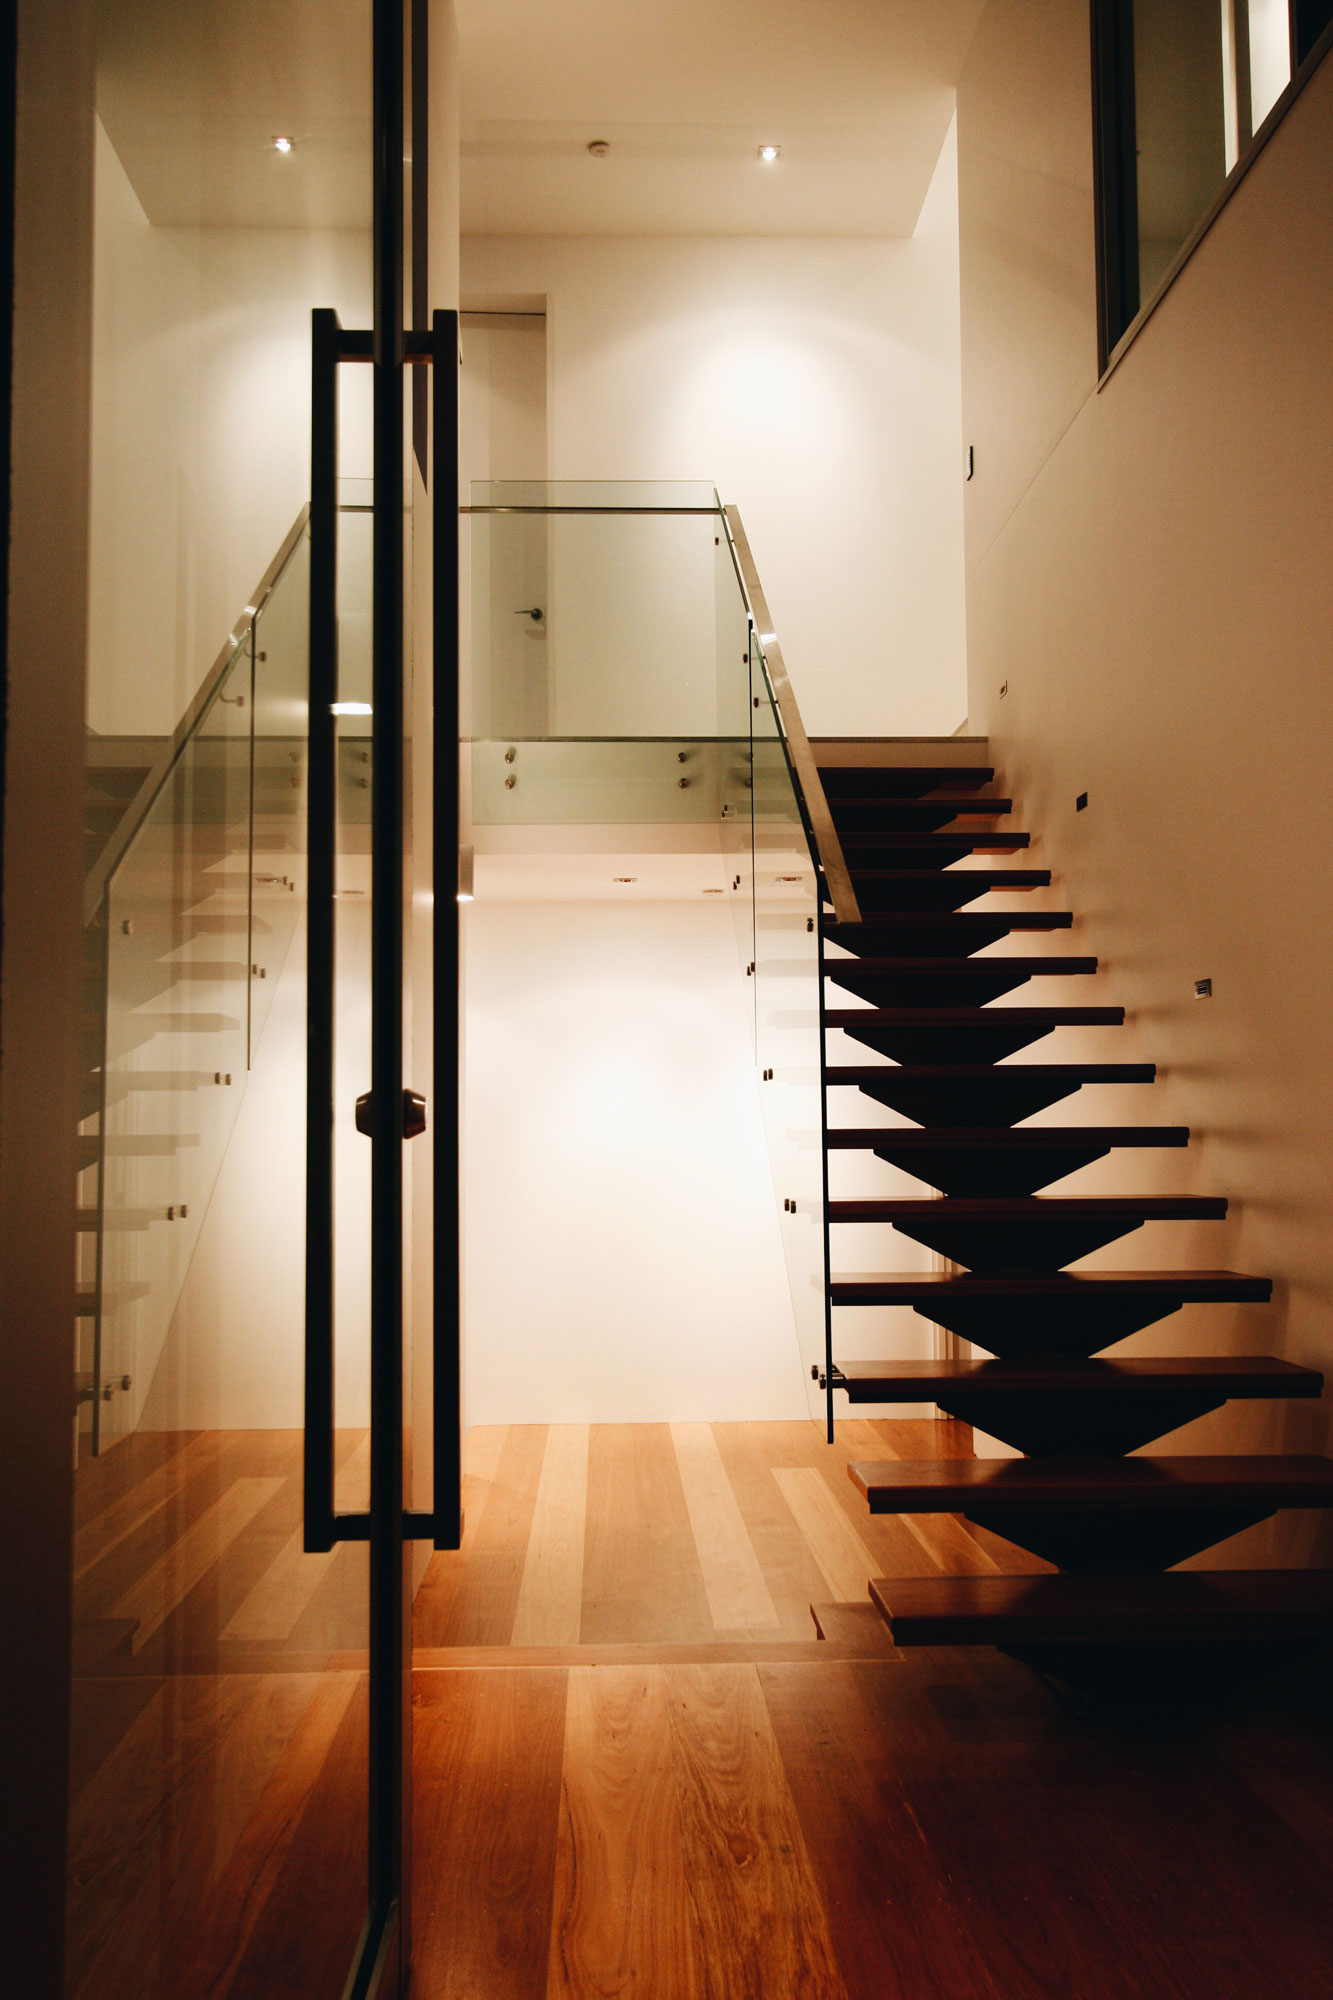 k-house entry stairs